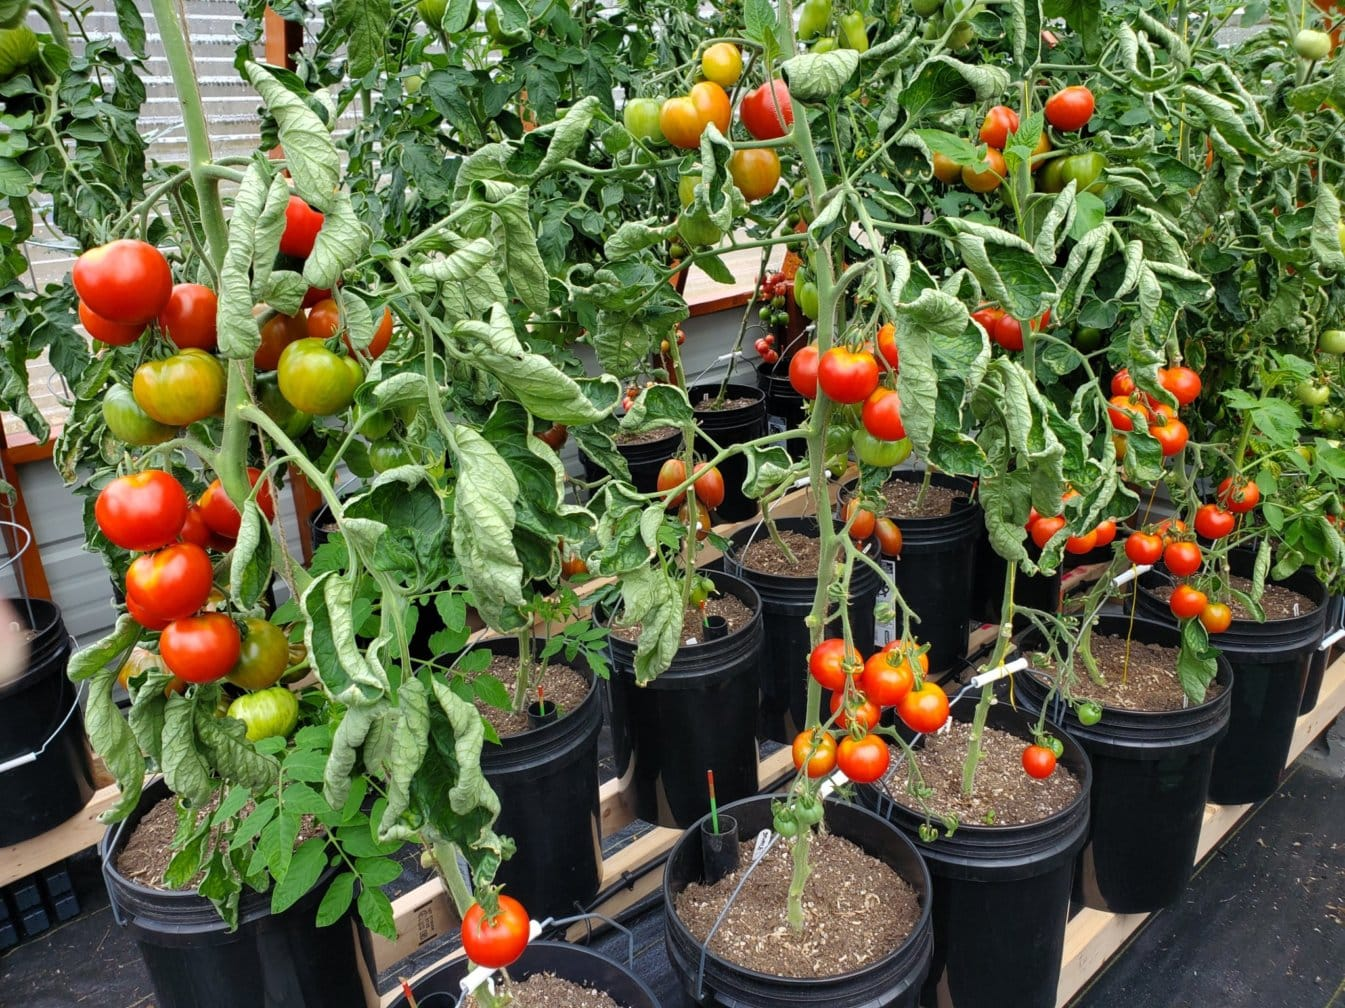 Partial Tomato Production